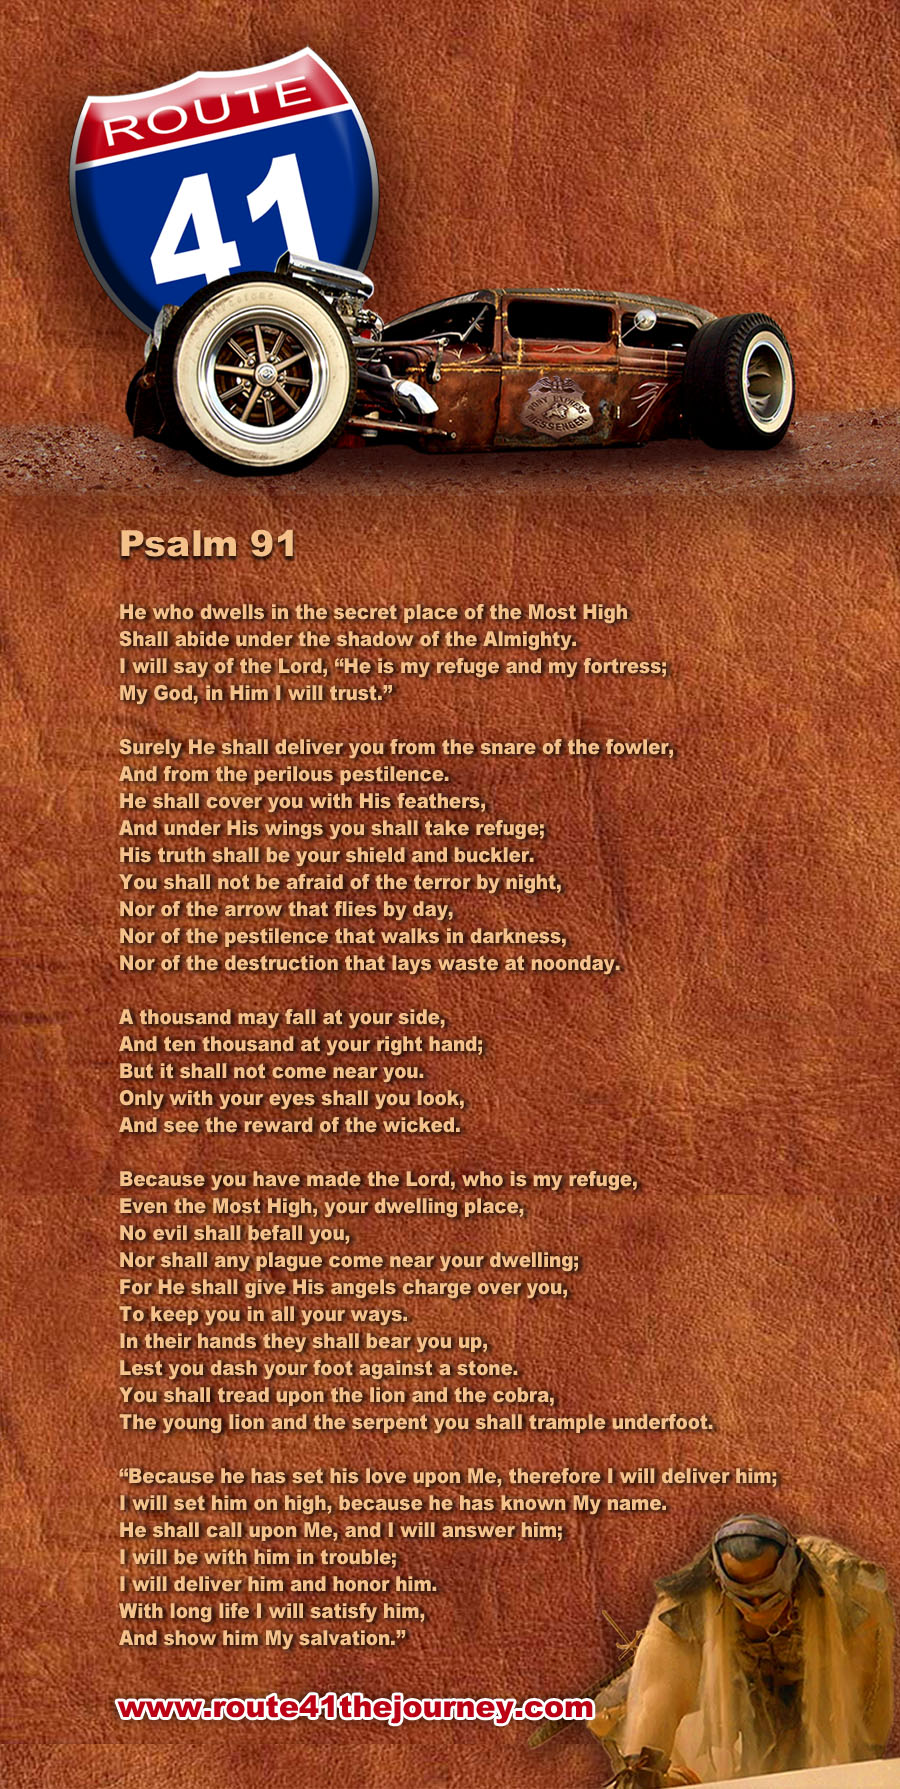 Route41-Psalm91-B